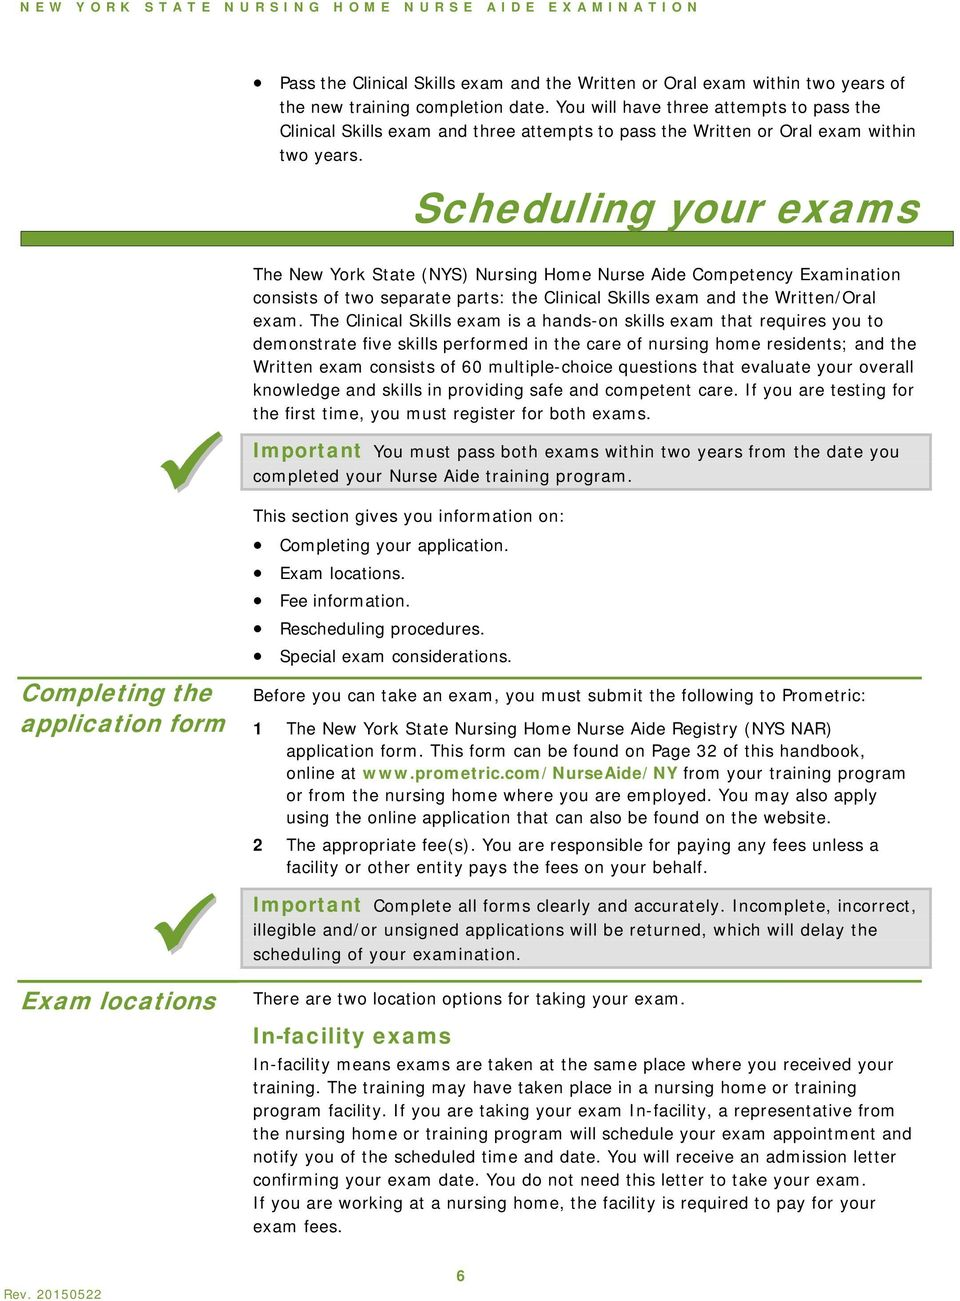 Scheduling your exams The New York State (NYS) Nursing Home Nurse Aide Competency Examination consists of two separate parts: the Clinical Skills exam and the Written/Oral exam.